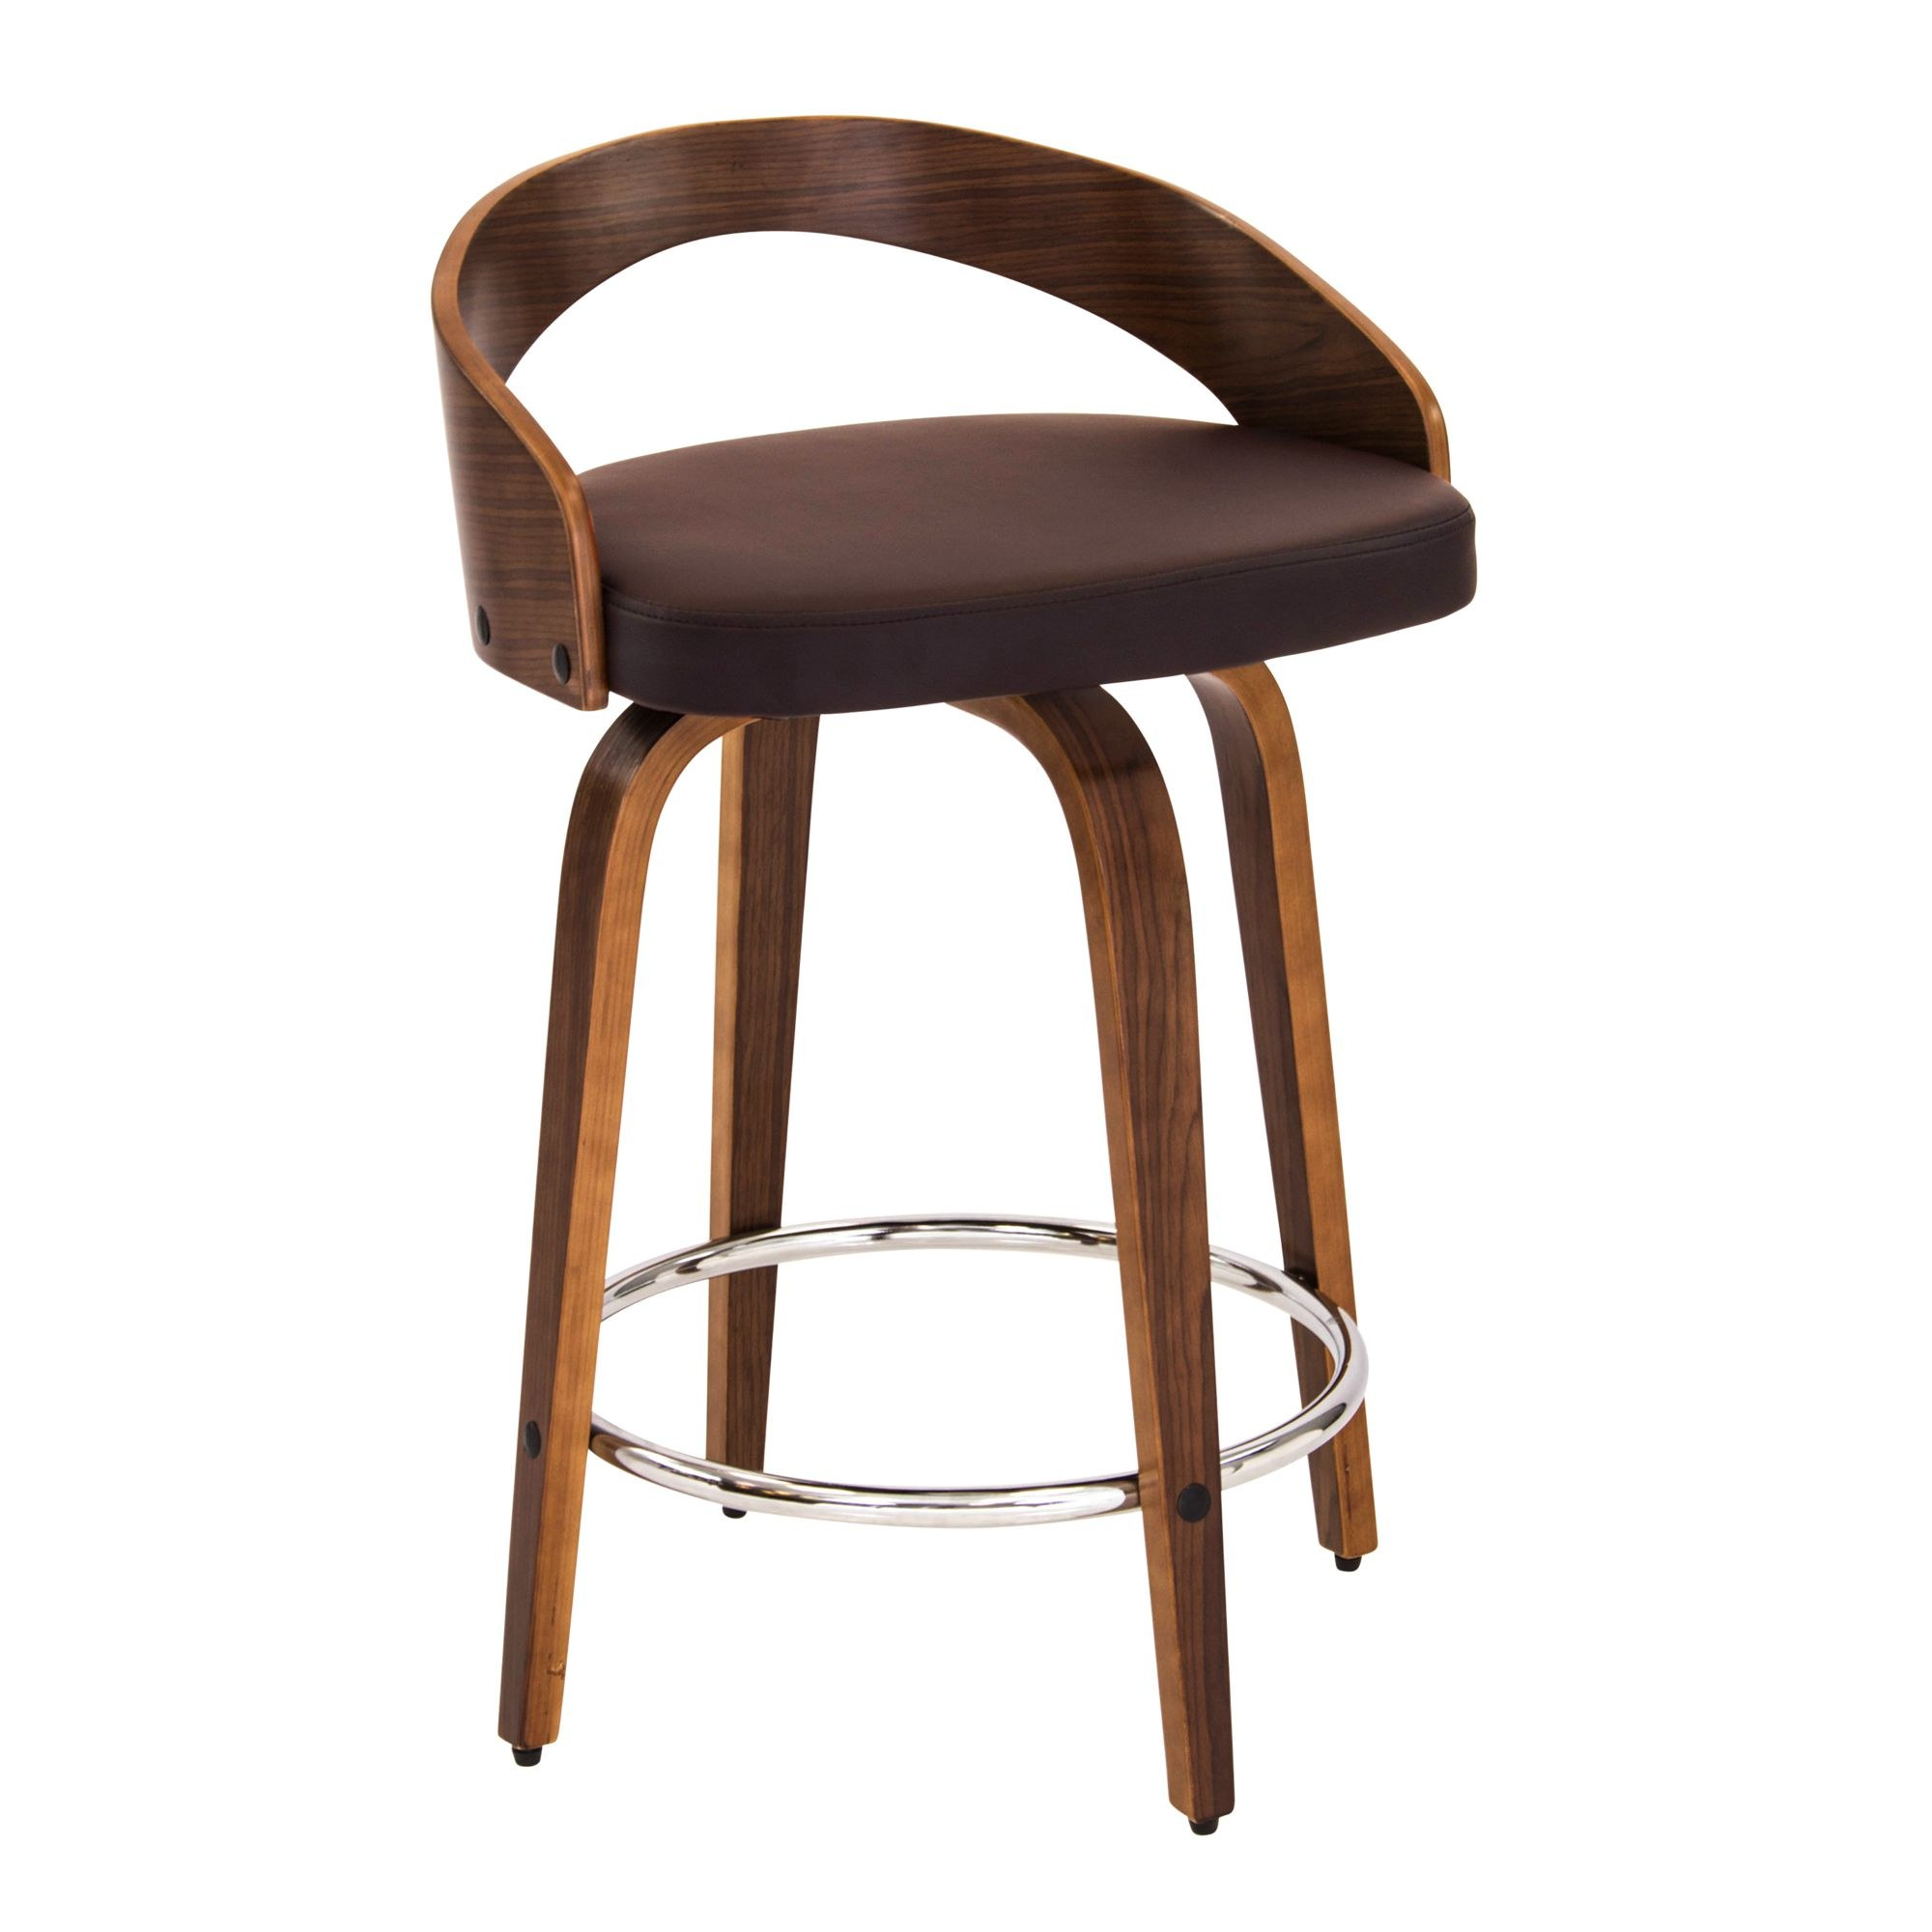 Grotto Counter Stool In Walnut Brown By Lumisource